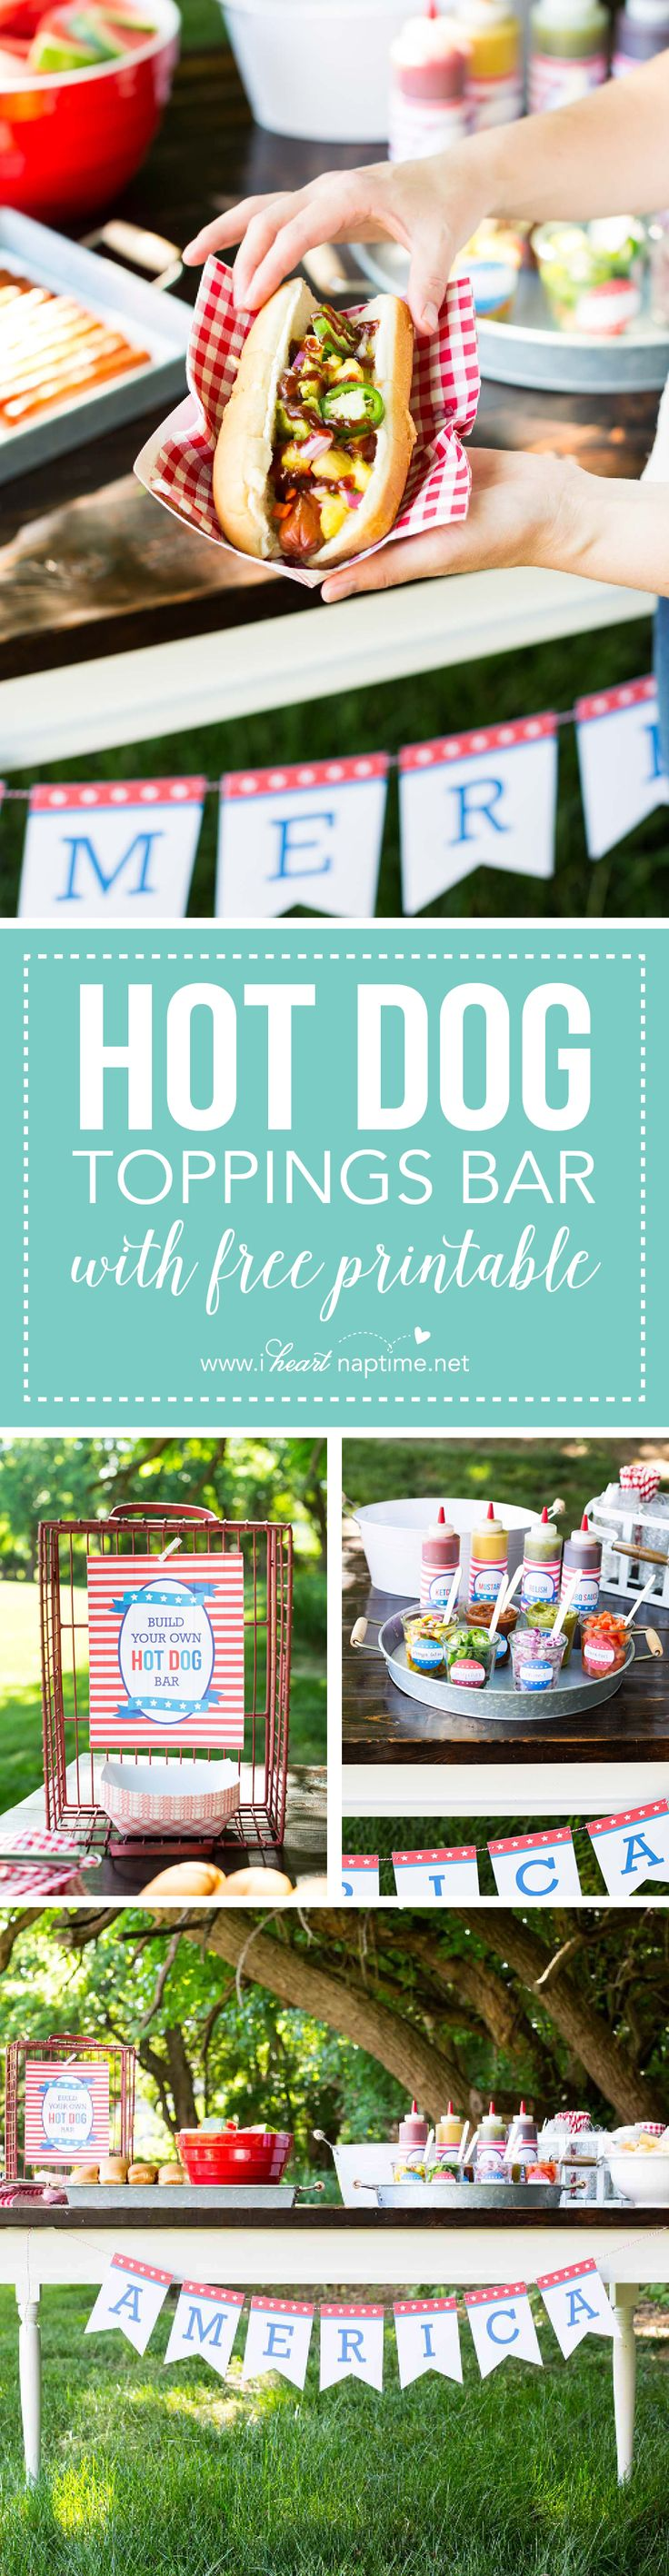 Hot Dog Toppings Bar for the 4th of July ...the perfect way to celebrate with friends and family. In partnership with #HebrewNational